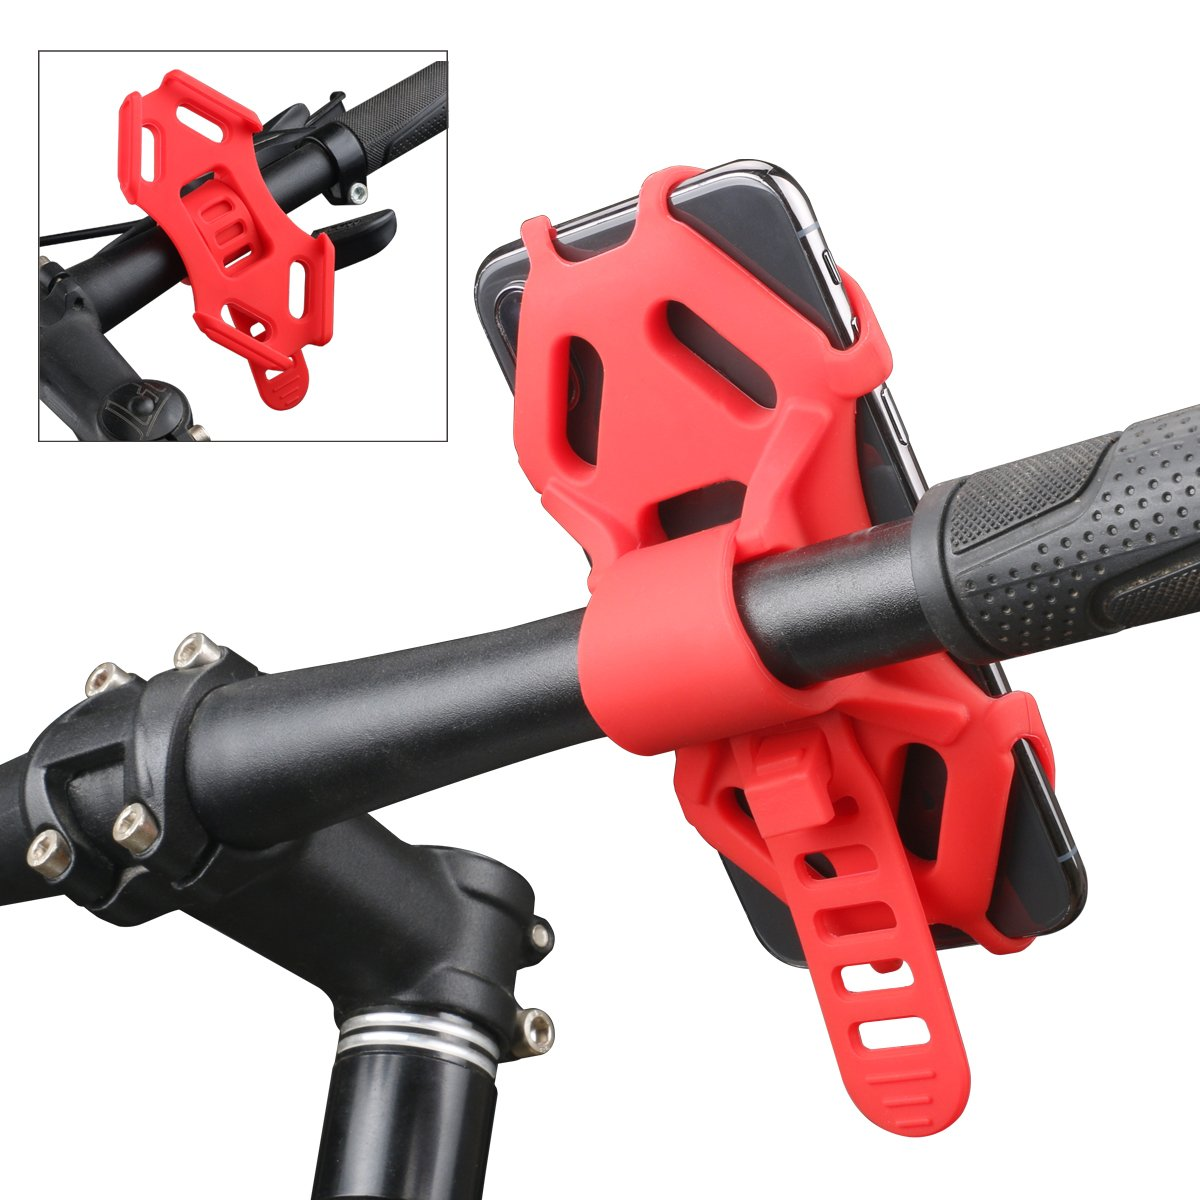 AEMIAO Bike Phone Mount, Silicone Strap Adjustable Bicycle Phone Holder Motorcycle Phone Mount, Universal Cell Phone Holder Bike Handlebar Cradle for Any Smartphone with 4.7''-6.0'' Screens iPhone, Red